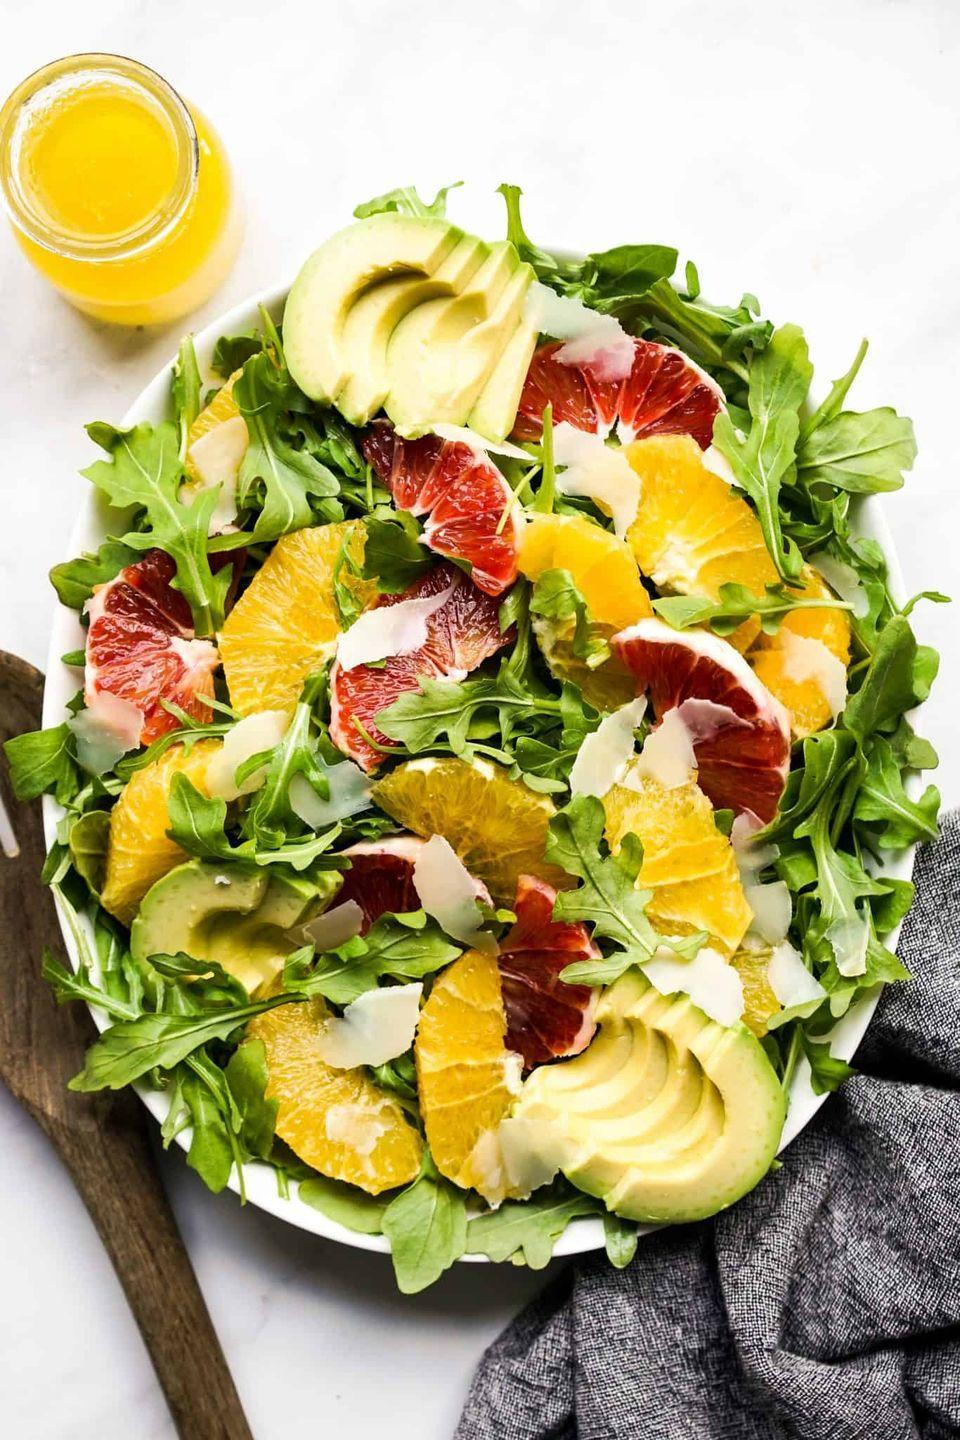 """<p>There are three types of citrus in this light and refreshing salad—oranges, blood oranges, and grapefruit. They'll add a pop of color to your Thanksgiving table.</p><p><strong>Get the recipe at <a href=""""https://www.joyousapron.com/avocado-orange-salad/"""" rel=""""nofollow noopener"""" target=""""_blank"""" data-ylk=""""slk:Joyous Apron"""" class=""""link rapid-noclick-resp"""">Joyous Apron</a>.</strong></p>"""